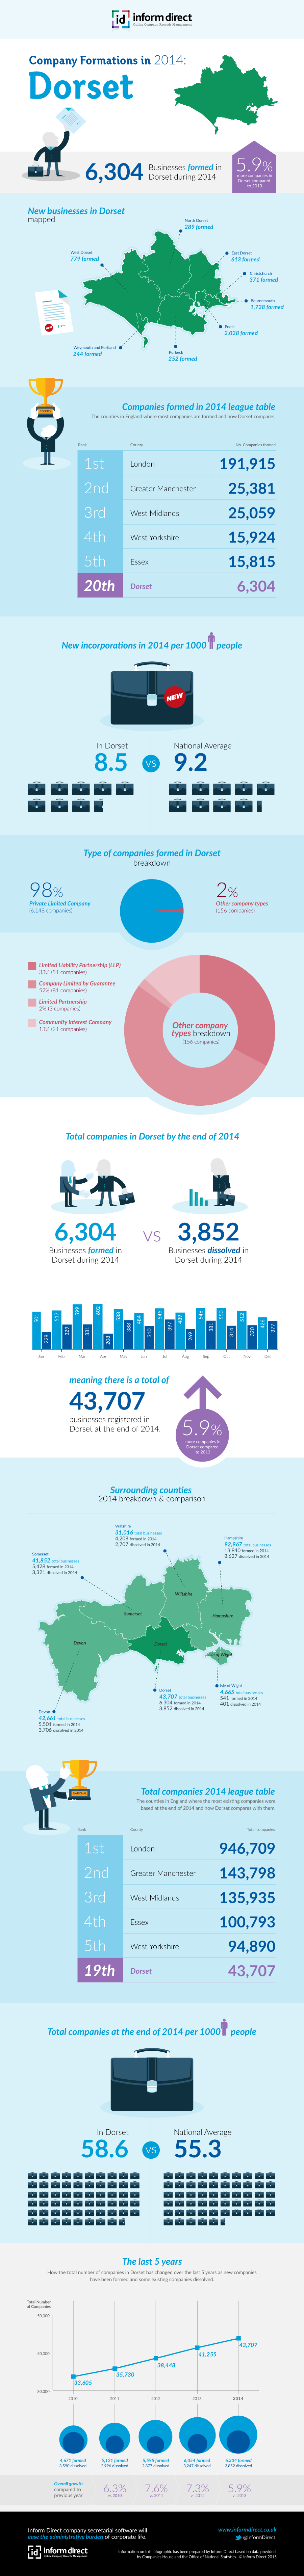 Inform Direct - Company Formations in Dorset 2014 Infographic